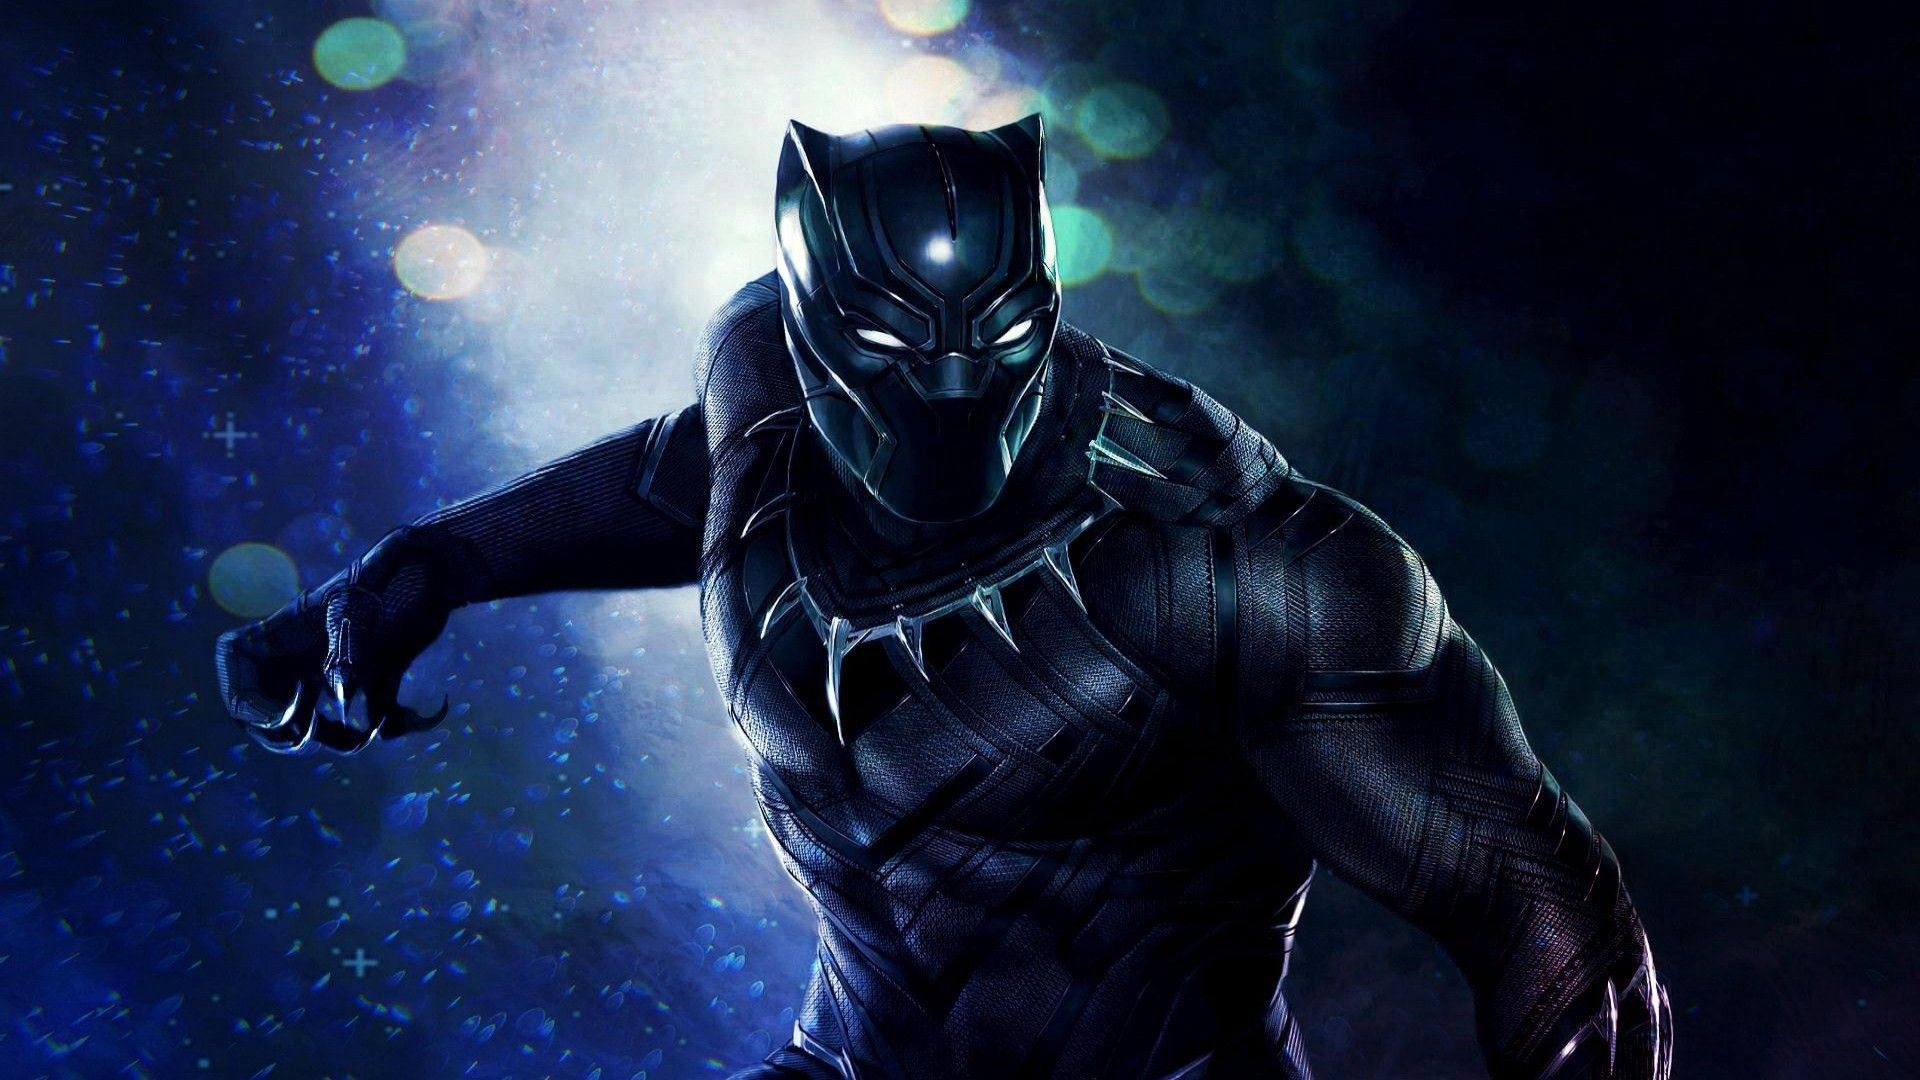 Spiderman and Black Panther could be coming to Fortnite later this season